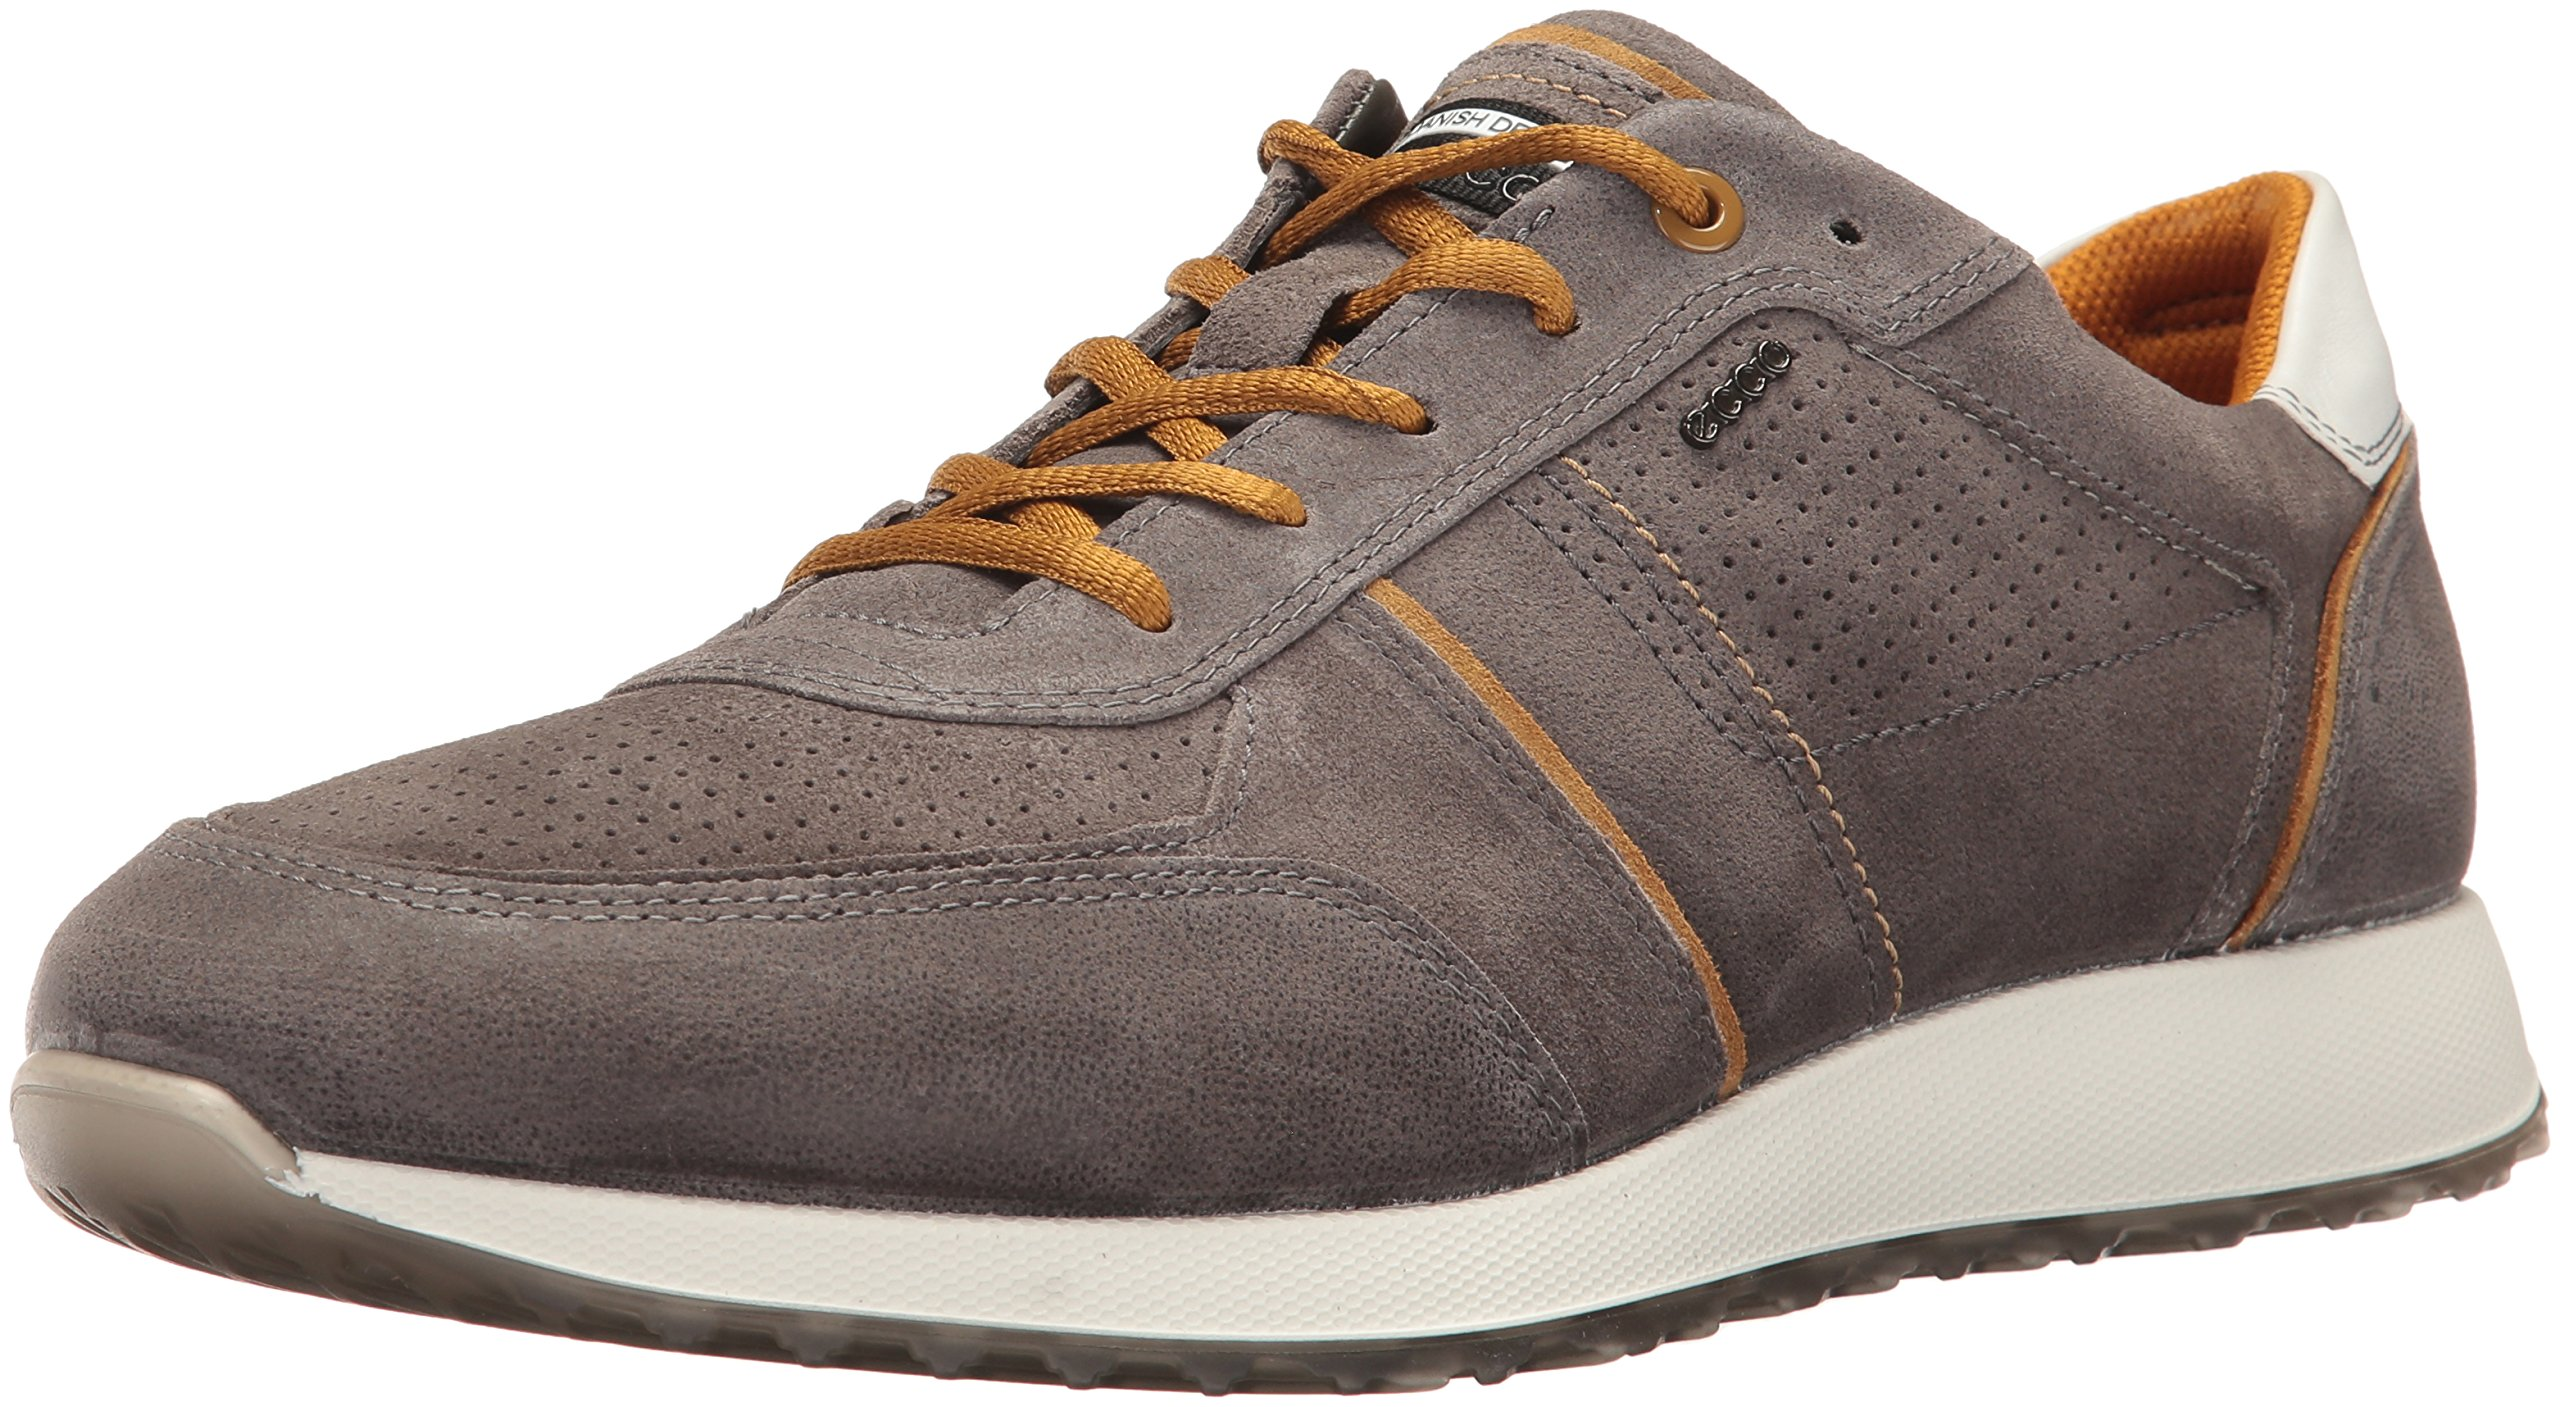 ECCO Men's Summer Sneak Fashion Sneaker, Warm Grey/Dried Tobacco, 42 EU/8-8.5 M US